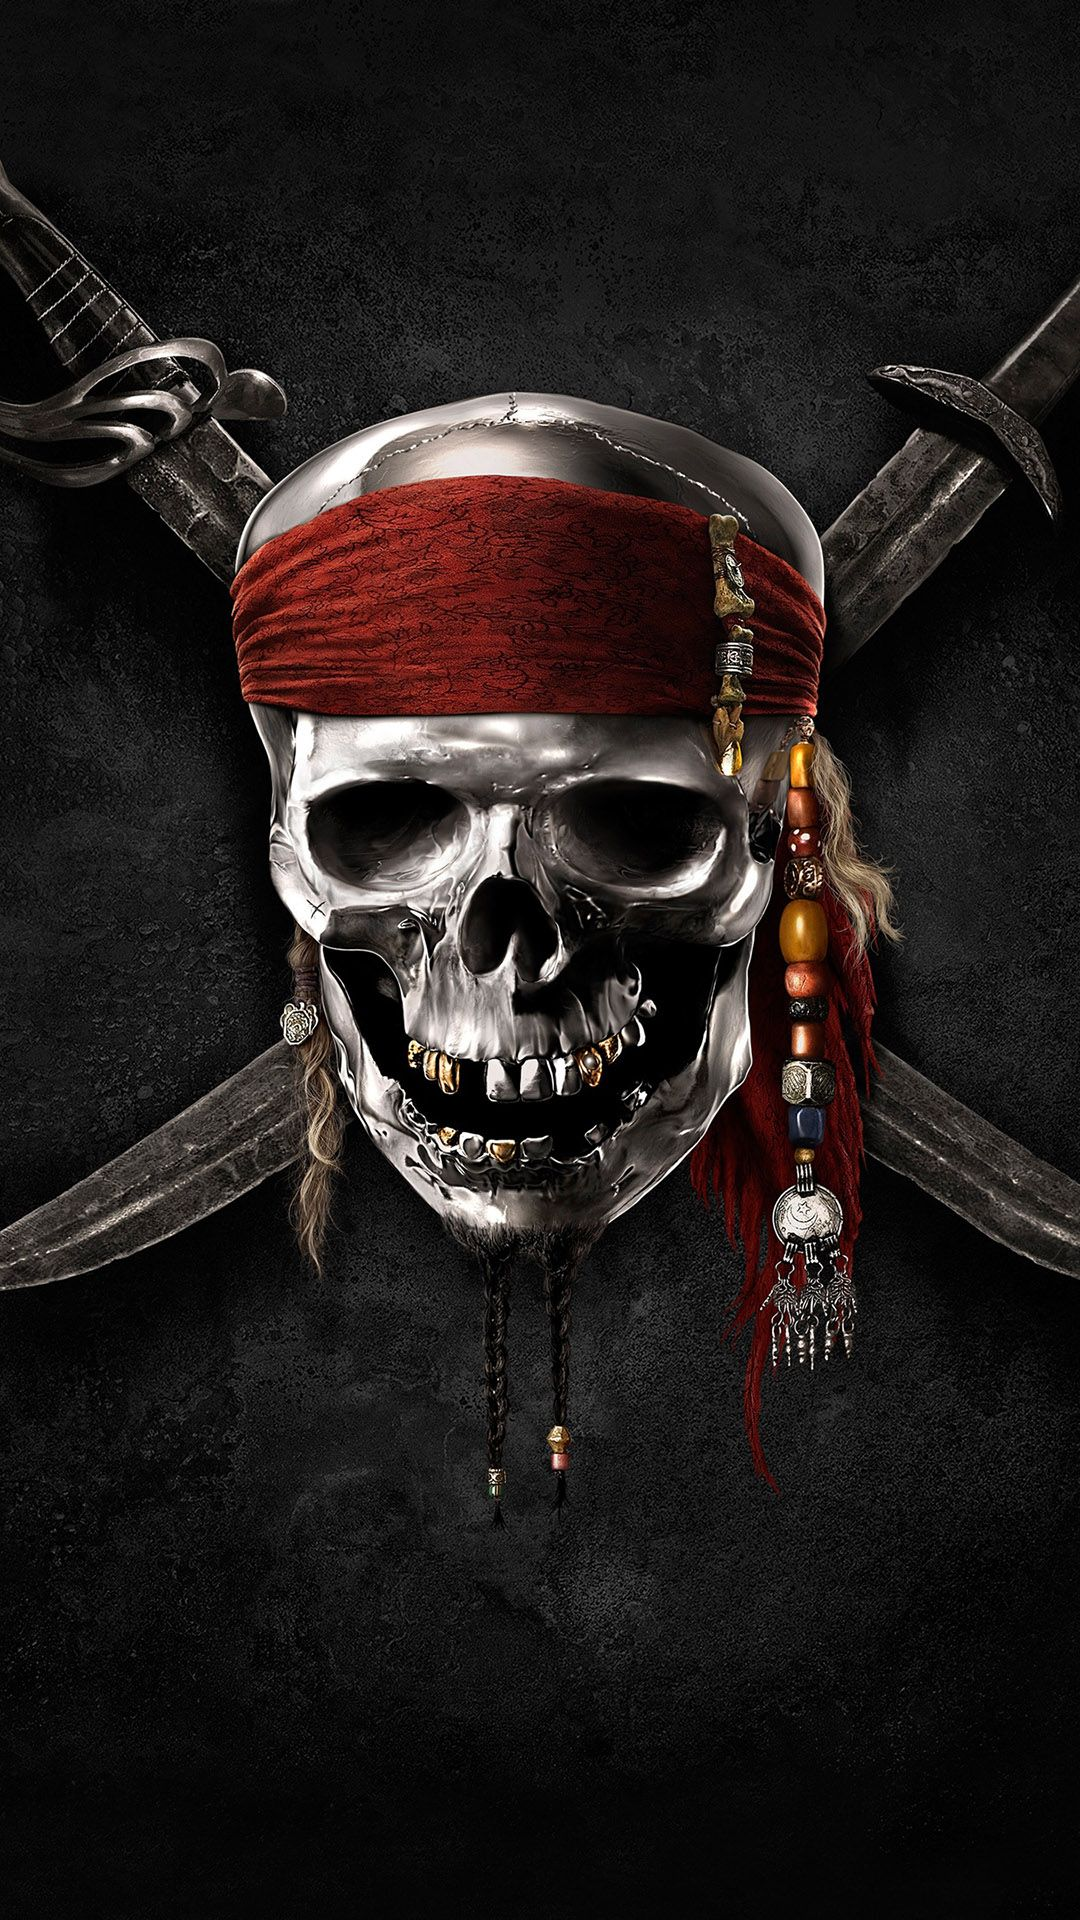 Mobile Black Pirates Hd Android Wallpaper For Mobile Pirates Of